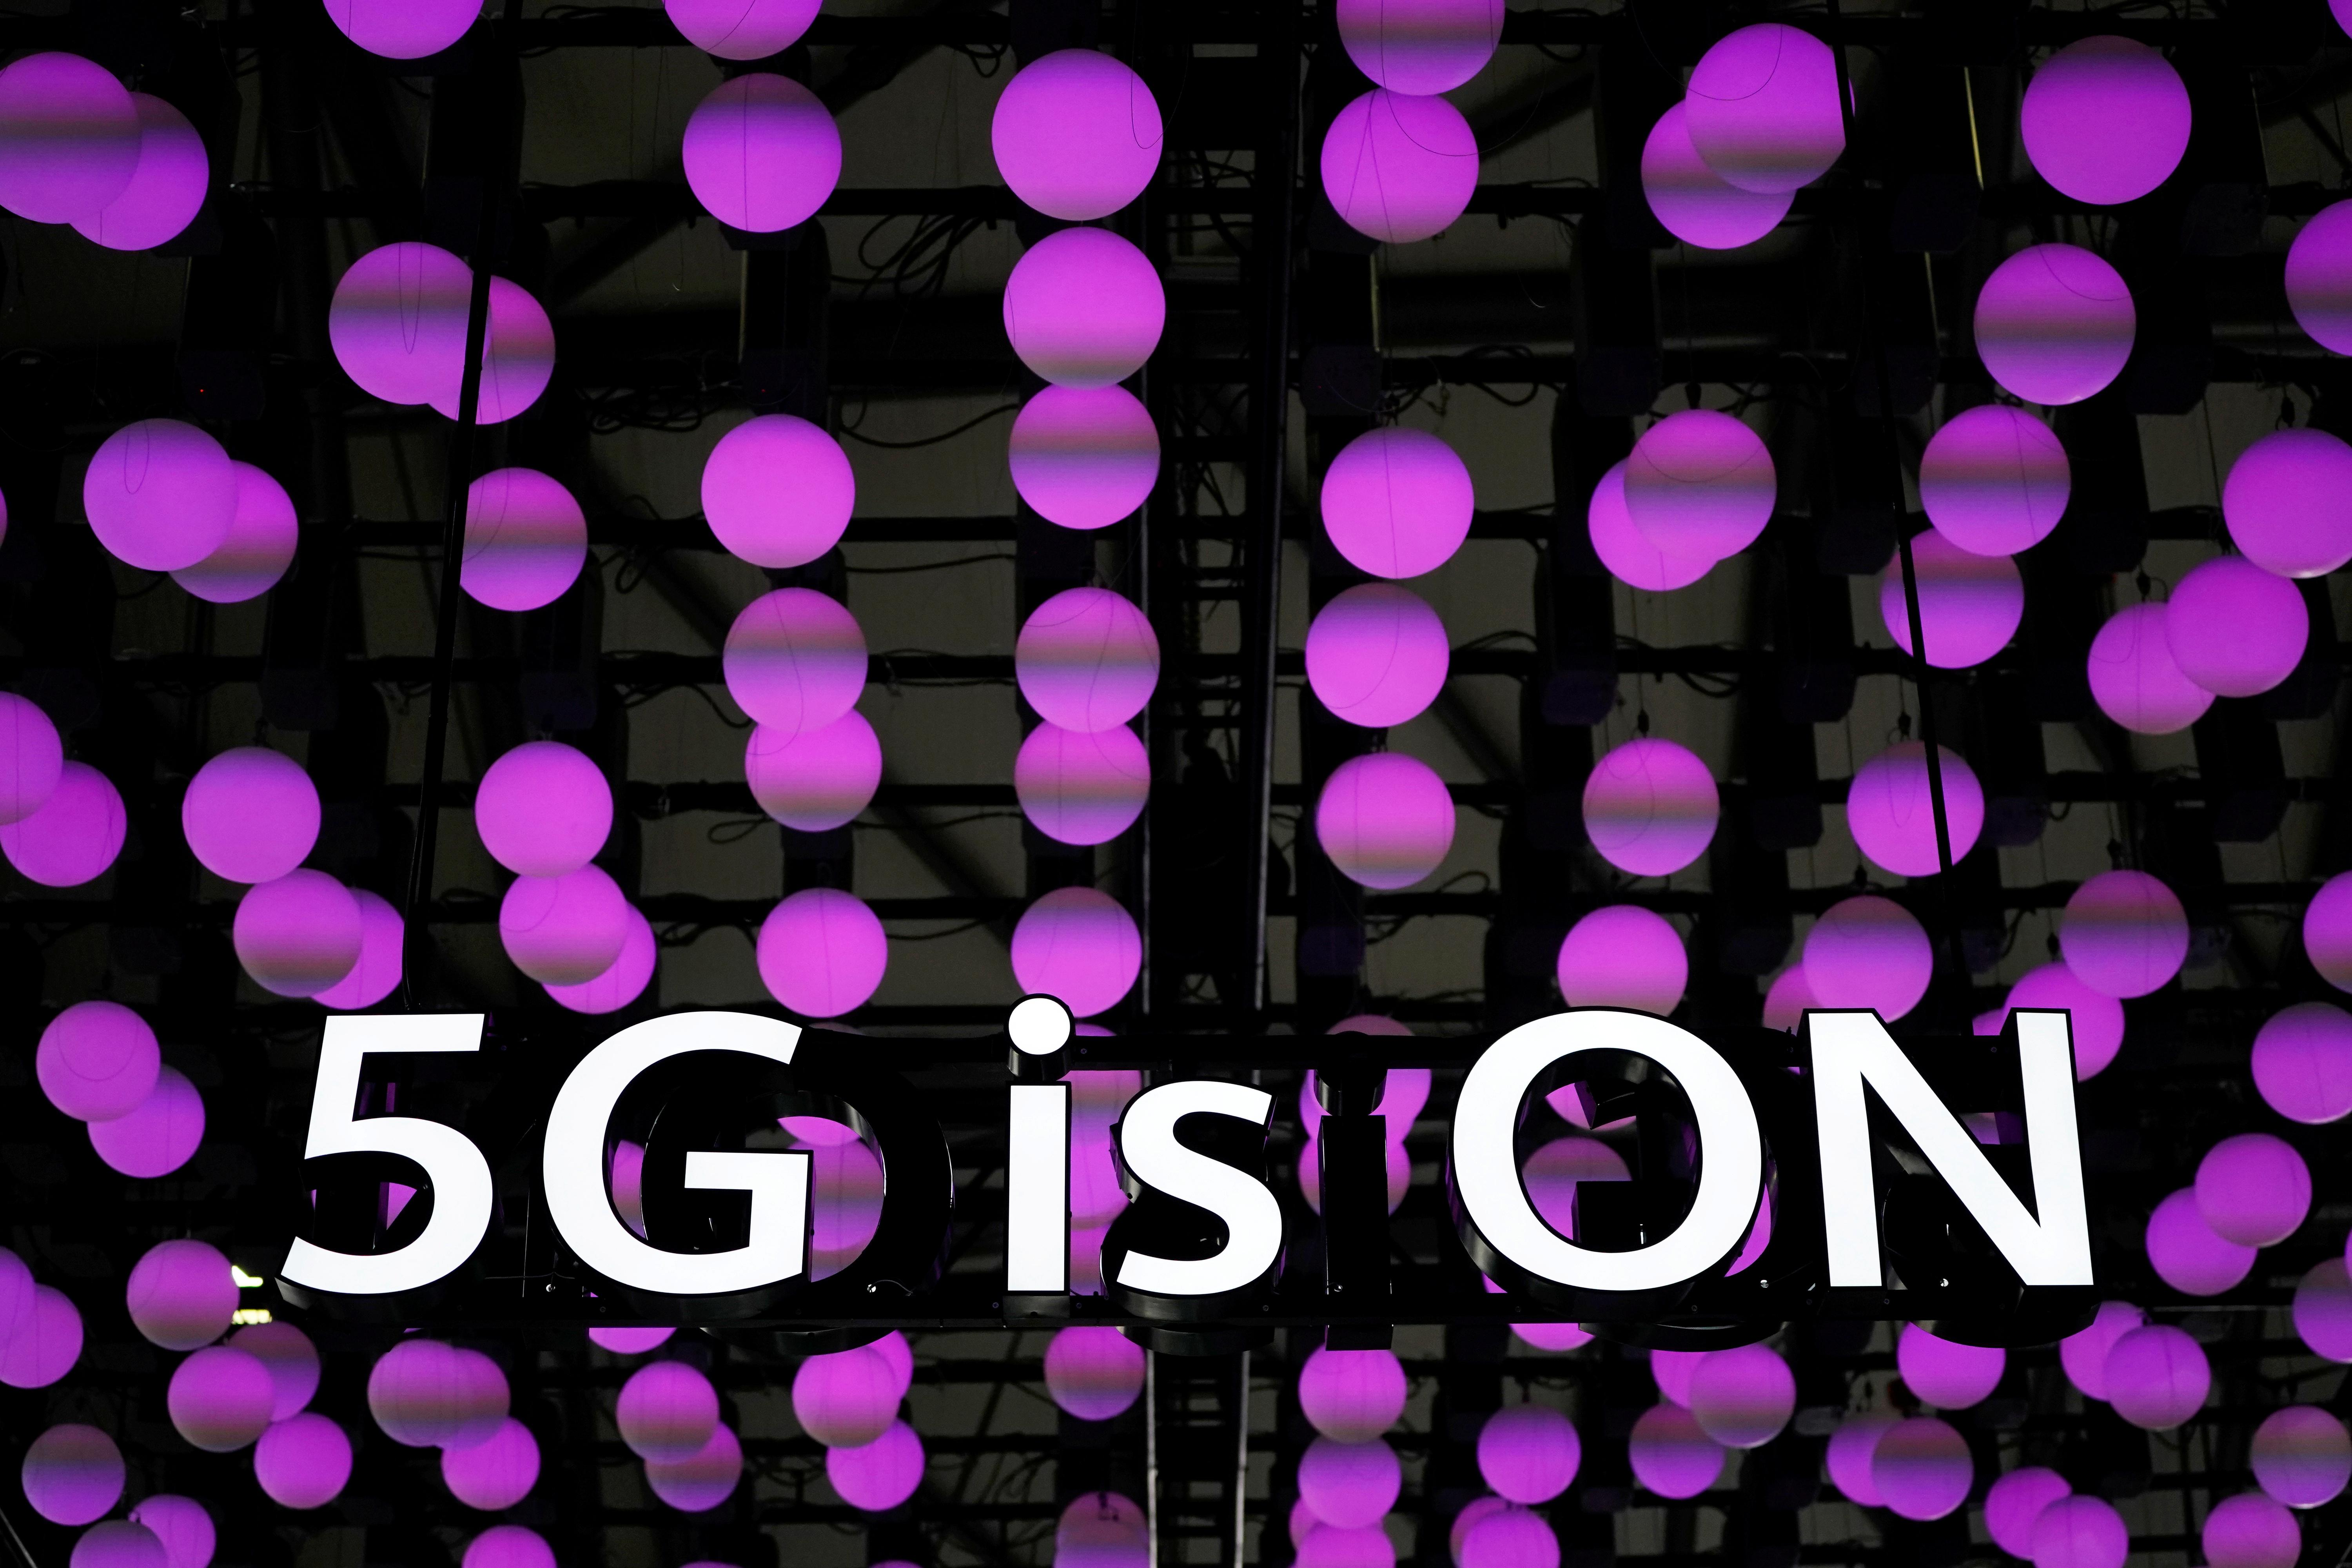 Huawei unveils new 5G antennae ahead of China ramp